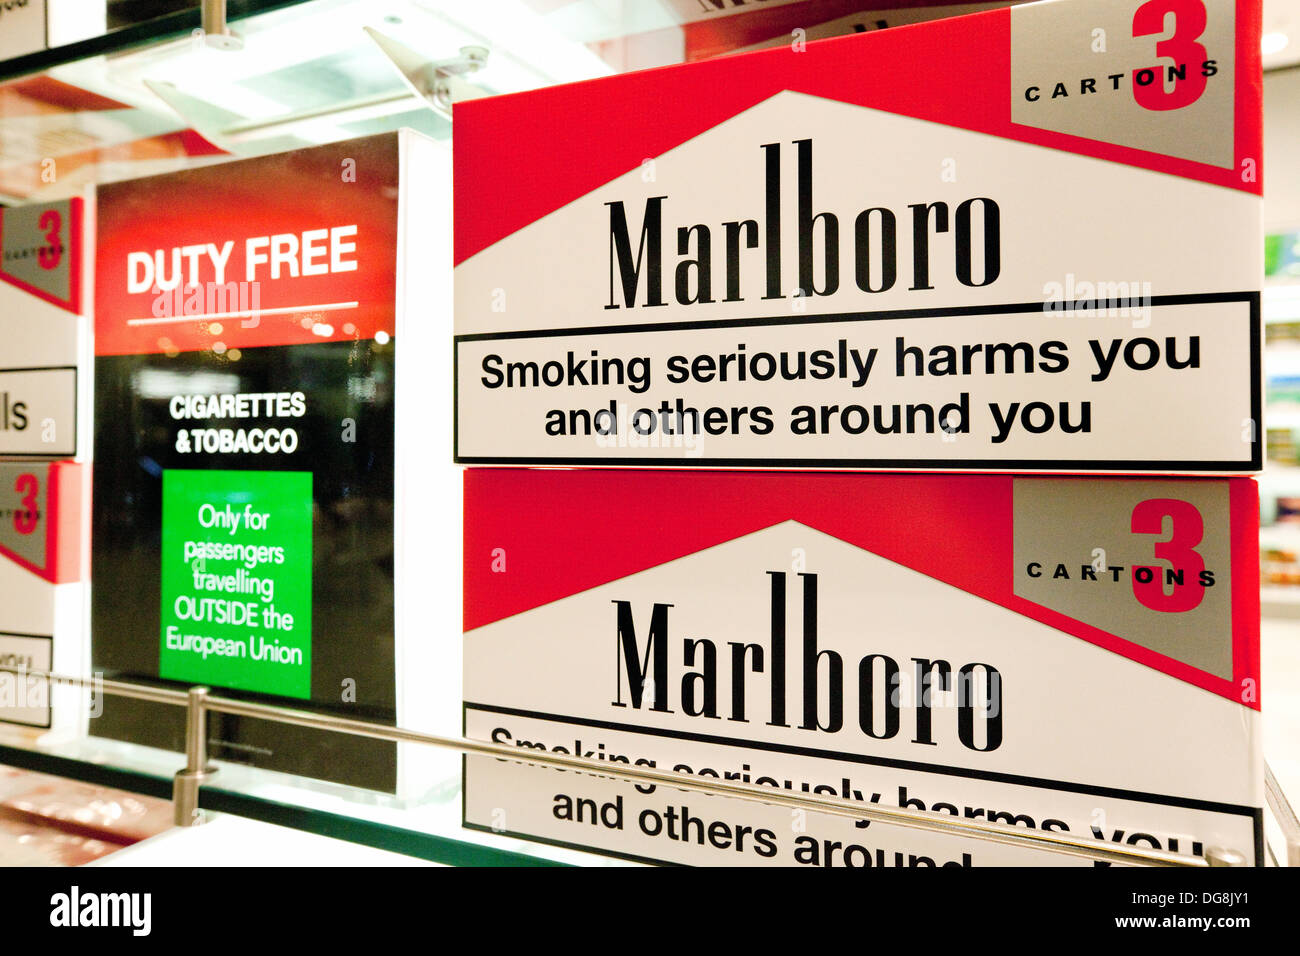 Buy cheap cigarettes Marlboro ship to London